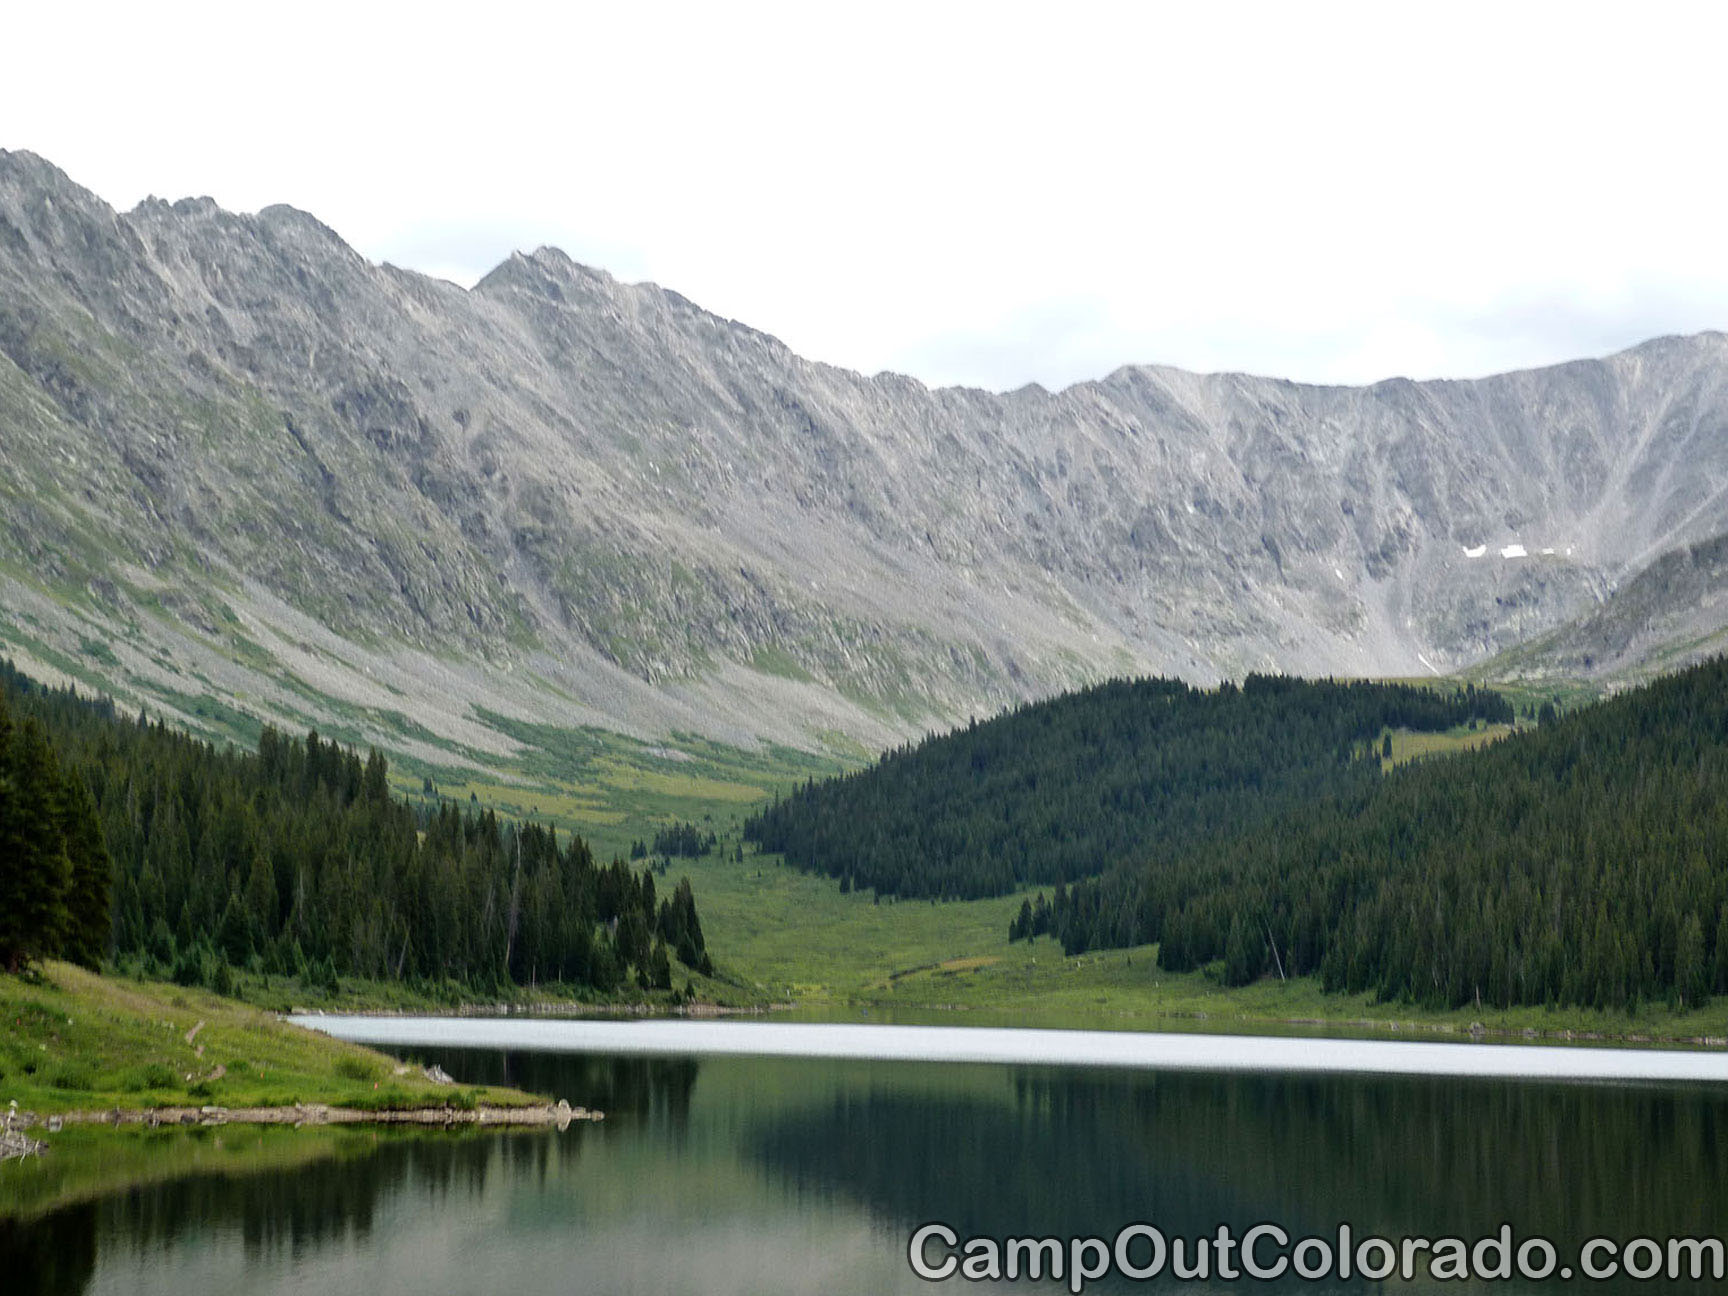 Camp-out-colorado-turquoise-lake-mountain-peaks